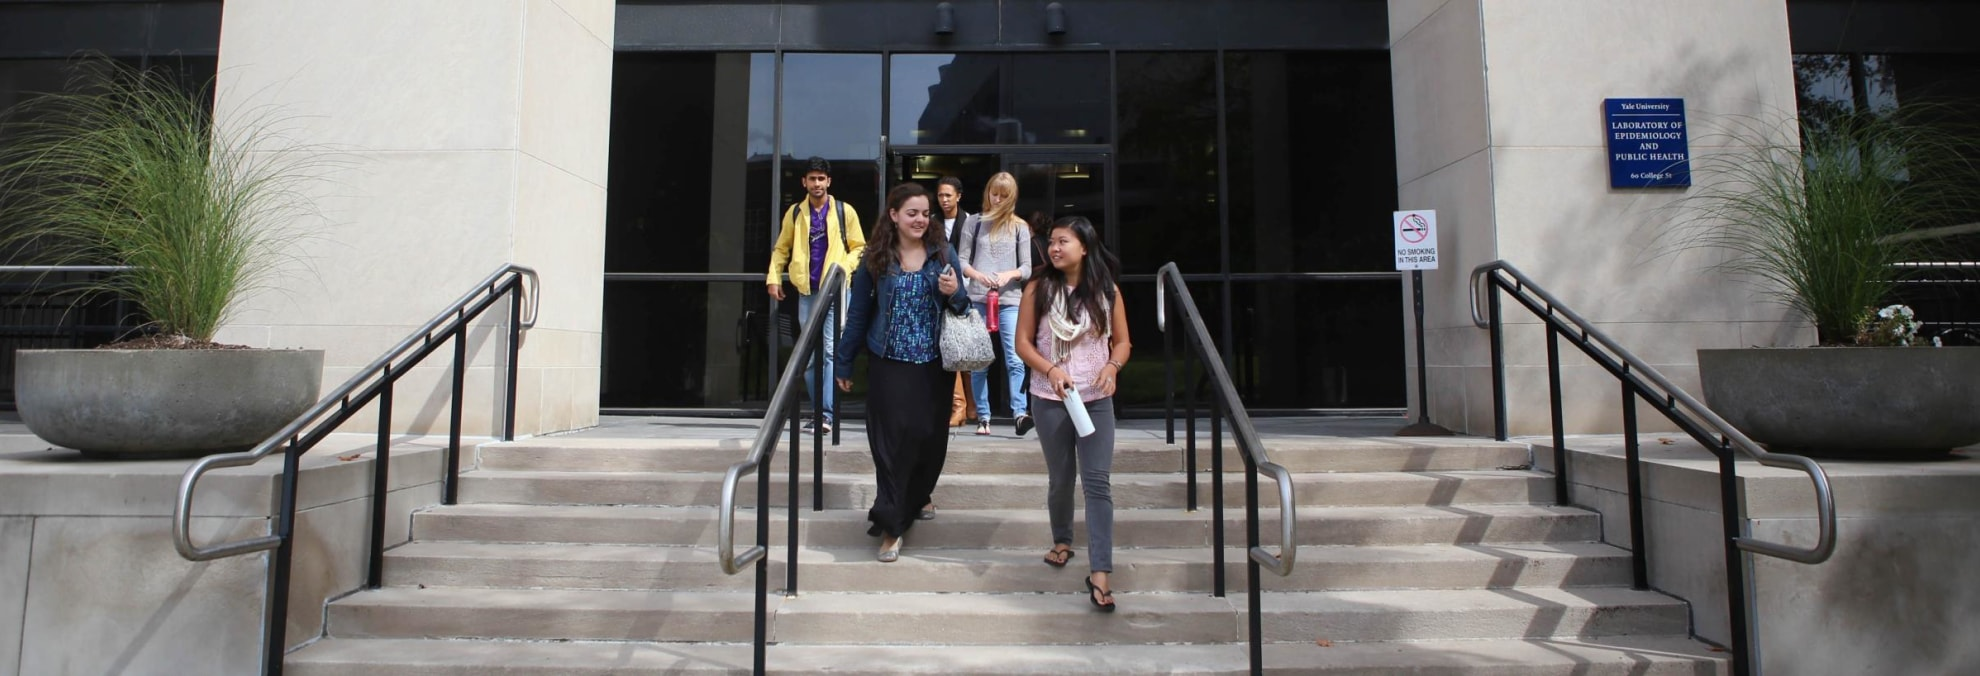 Students on the steps of the Laboratory of Epidemiology and Public Health building